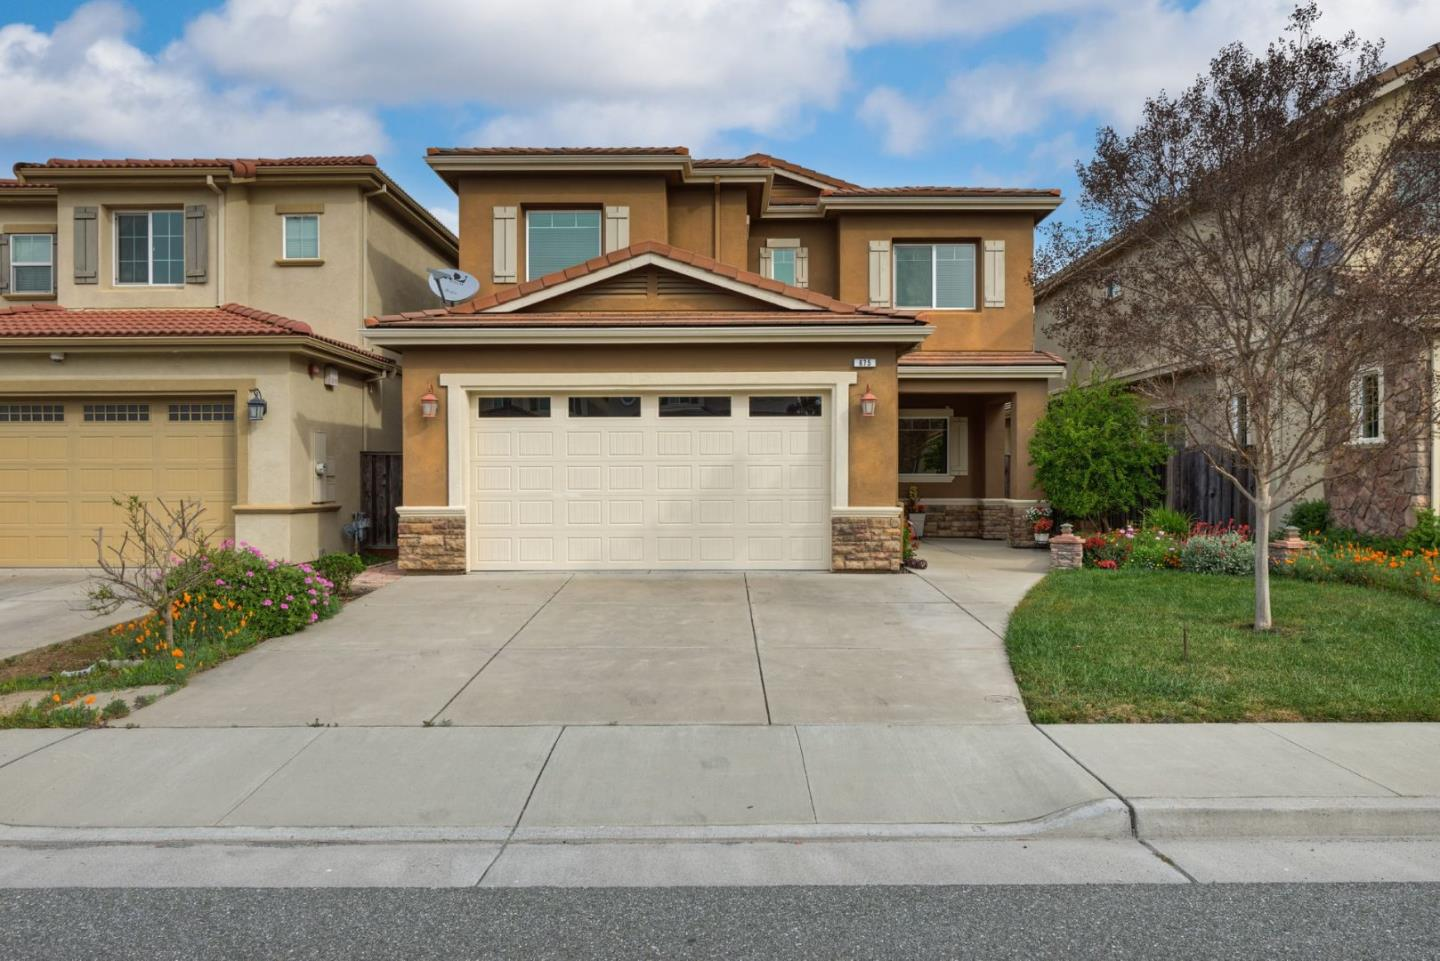 675 Saint Timothy PL, Morgan Hill in Santa Clara County, CA 95037 Home for Sale